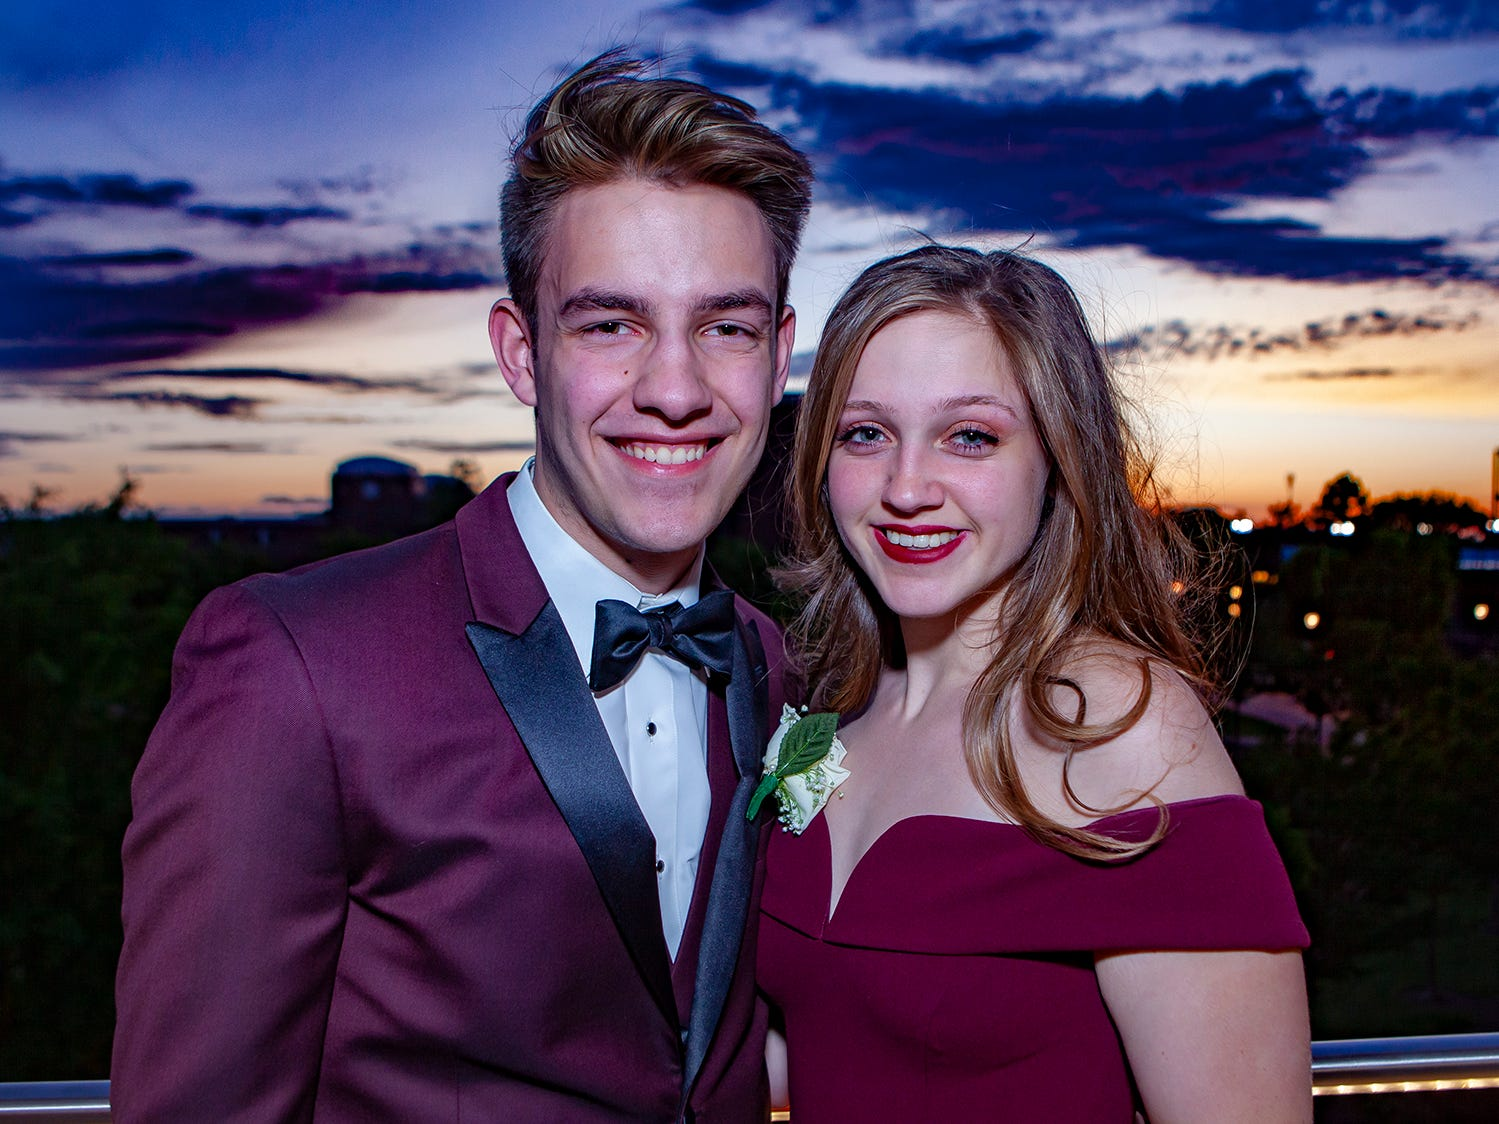 Mac Granholm and Kelcey Atwell at Riverdale's prom, held Saturday, April 27, 2019 at MTSU's Student Union Building.